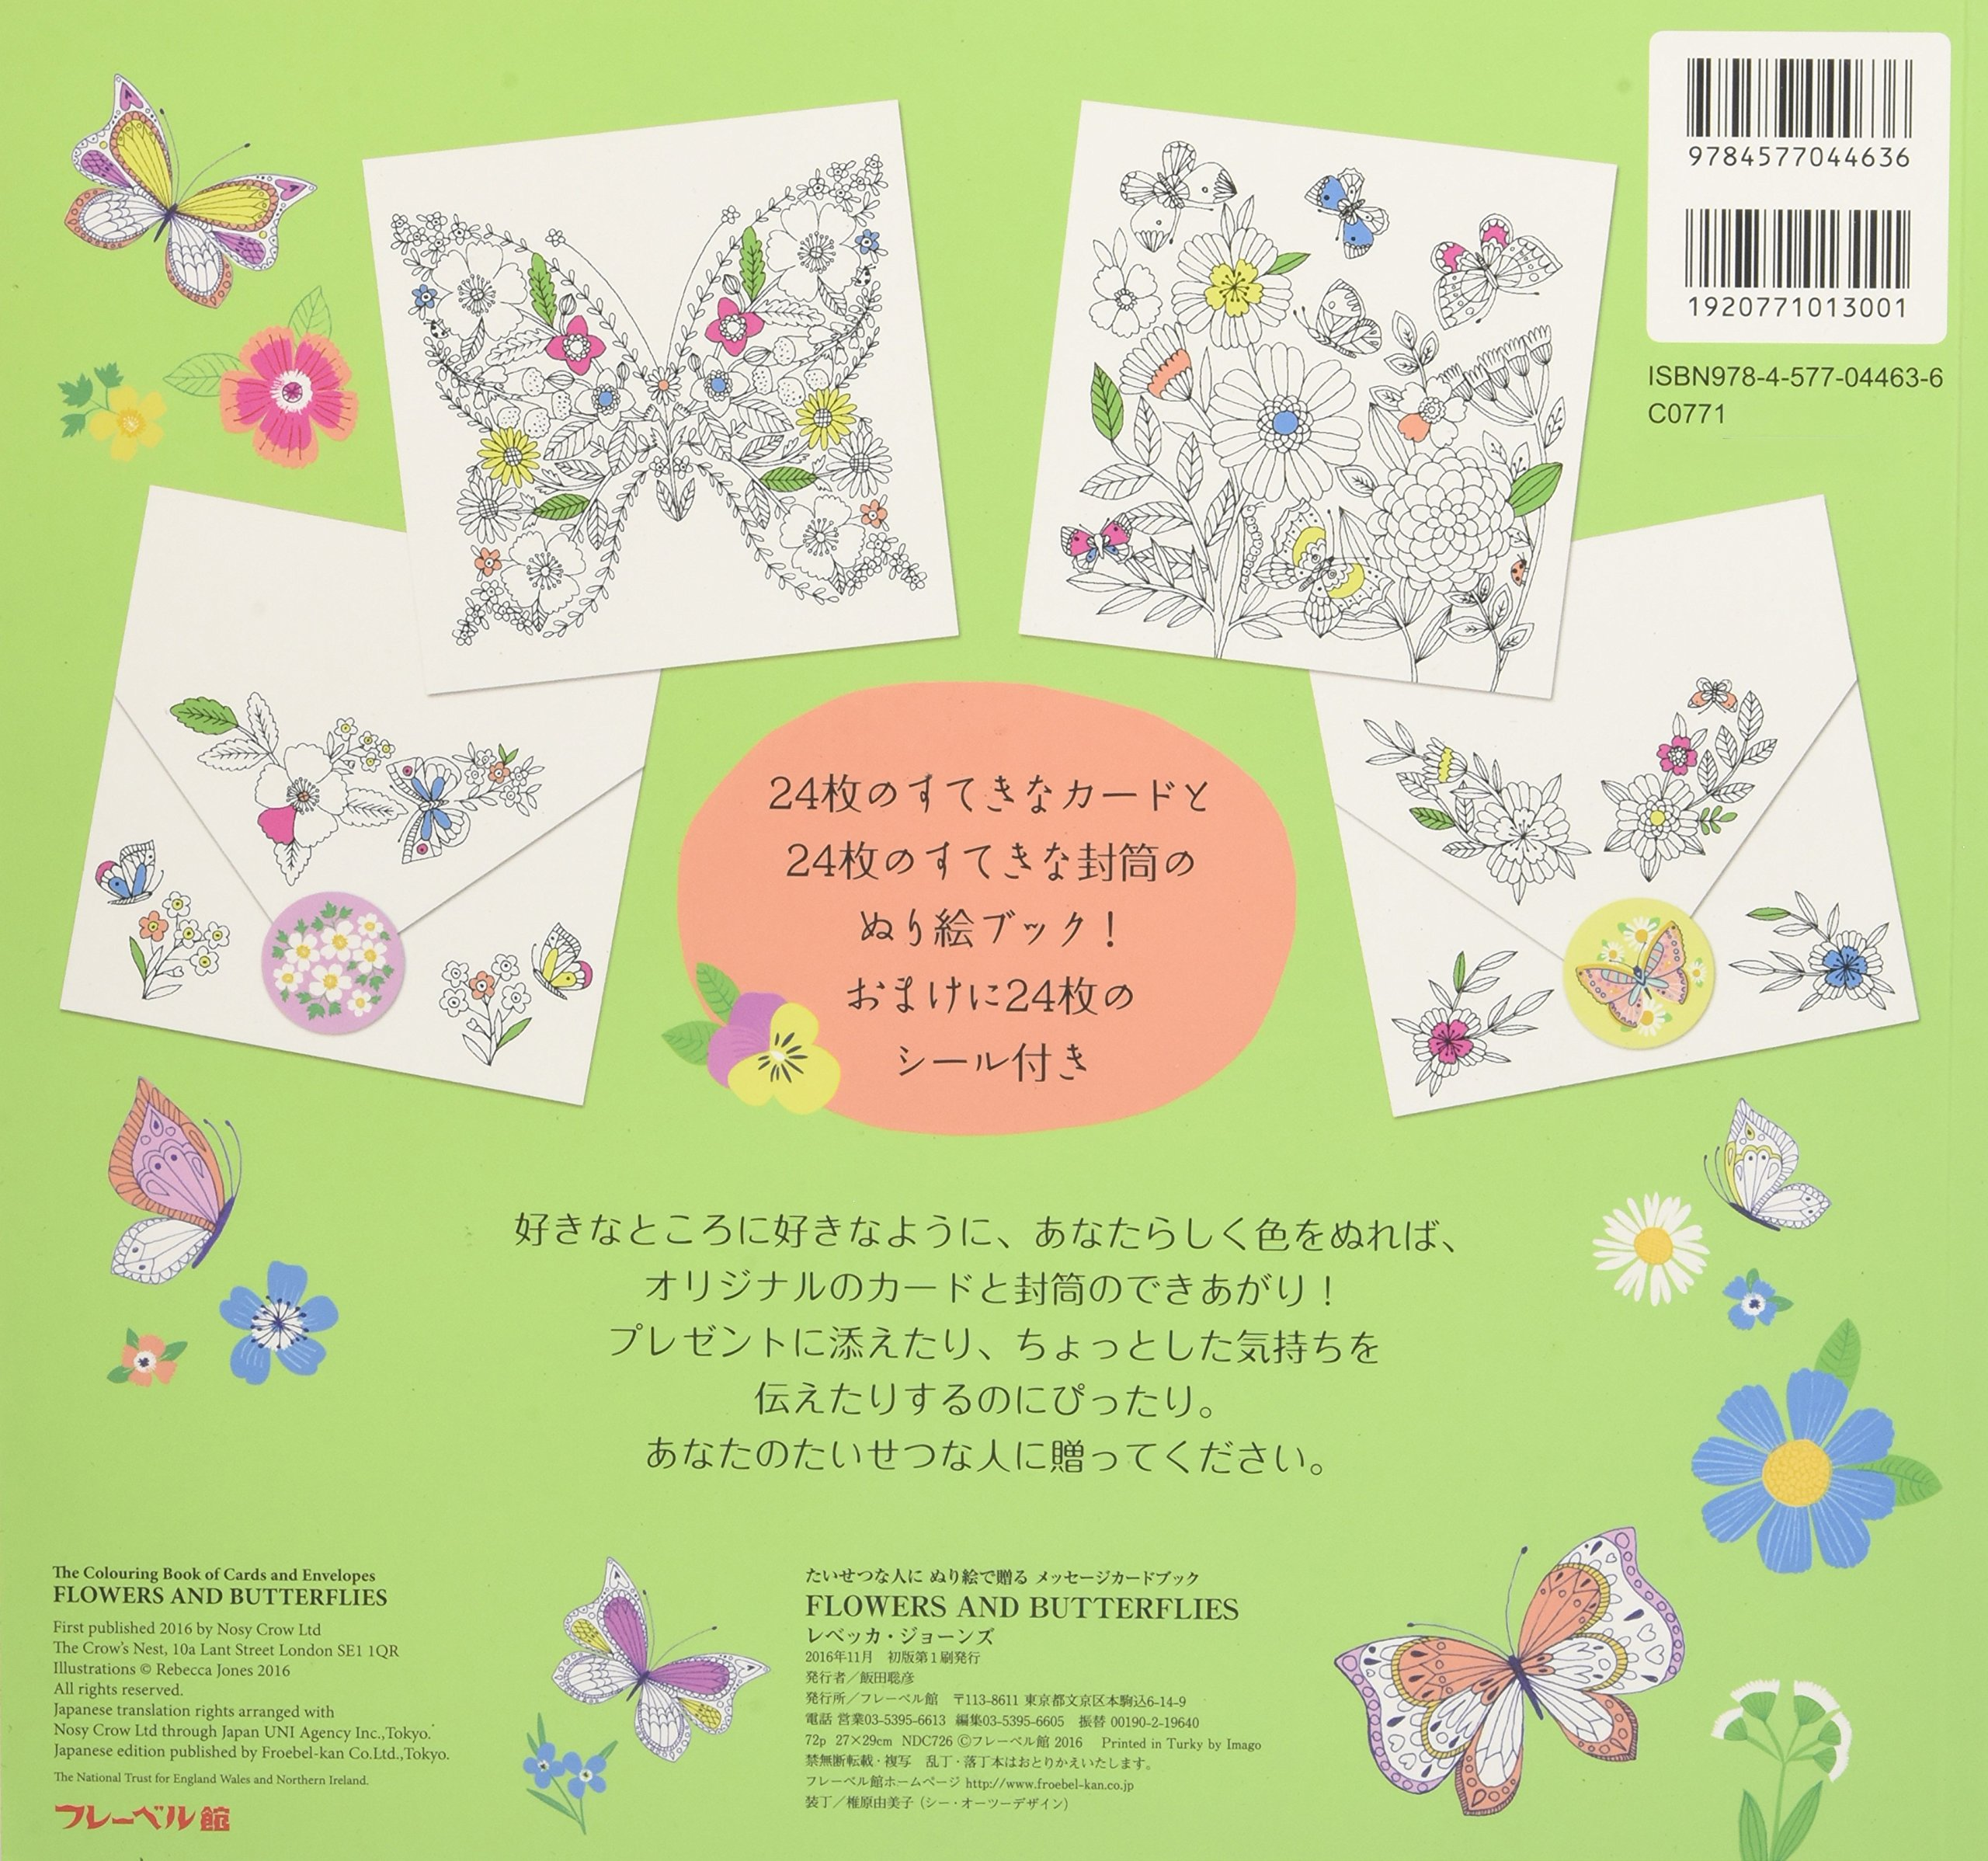 The coloring book of cards and envelopes flowers and butterflies - Flowers And Butterflies Amazon